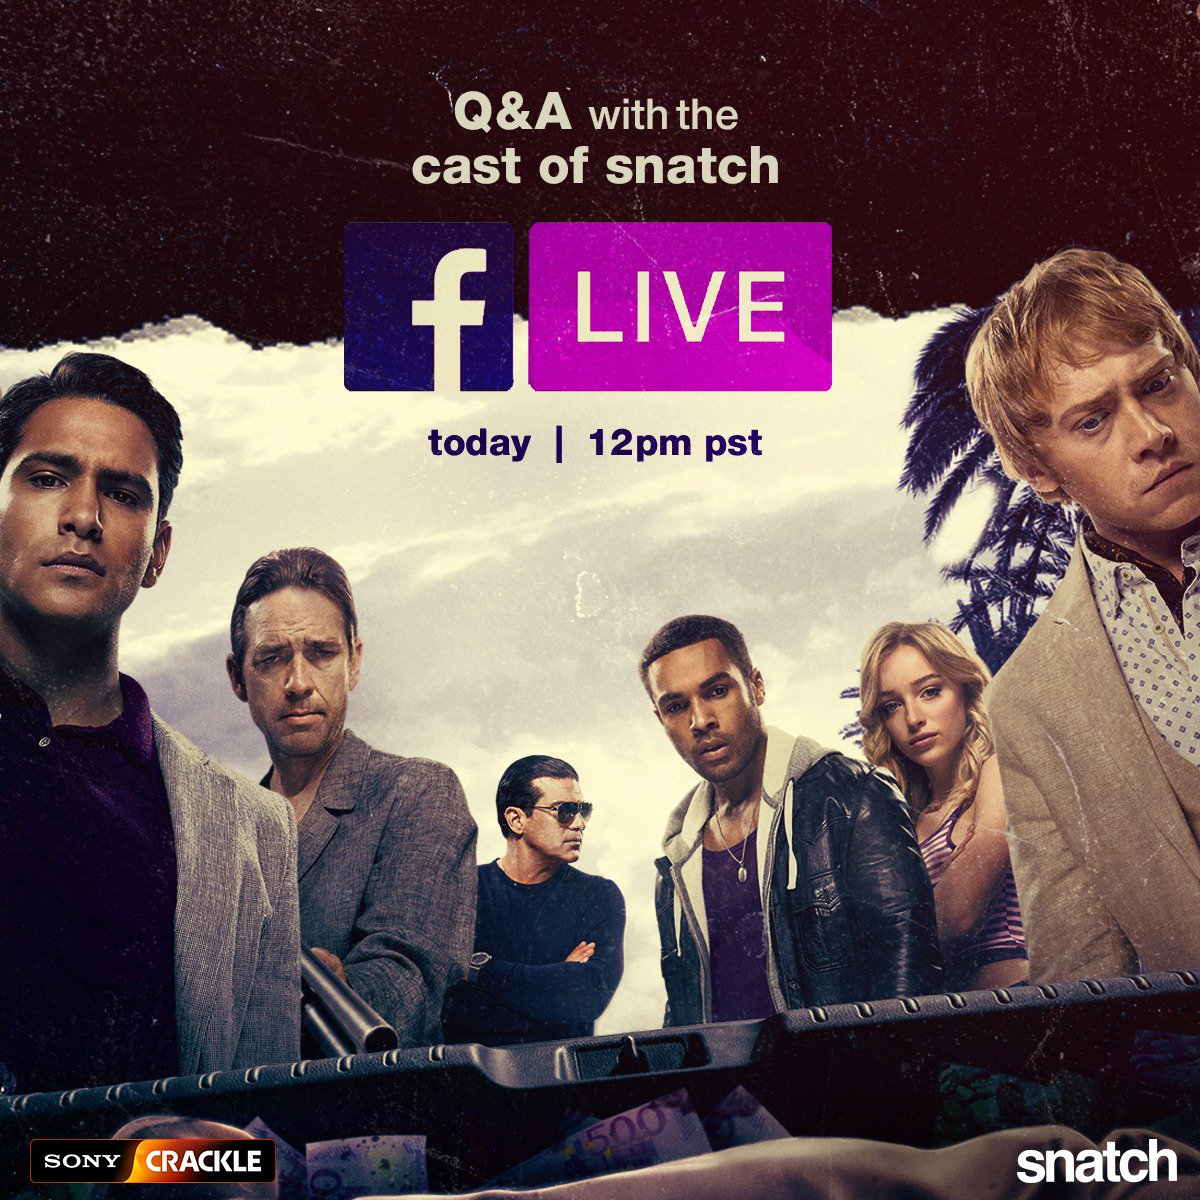 What secrets do the Hill Gang hold? Find out TODAY during a FB Live Q&A with @DougrayScott, @phoebe_dynevor, @lucapasqualino, @ItsLucien , #RupertGrint, @julietaubrey1, & @RealTamerHassan. Ask your questions now or during the FB live & get them answered from the cast!